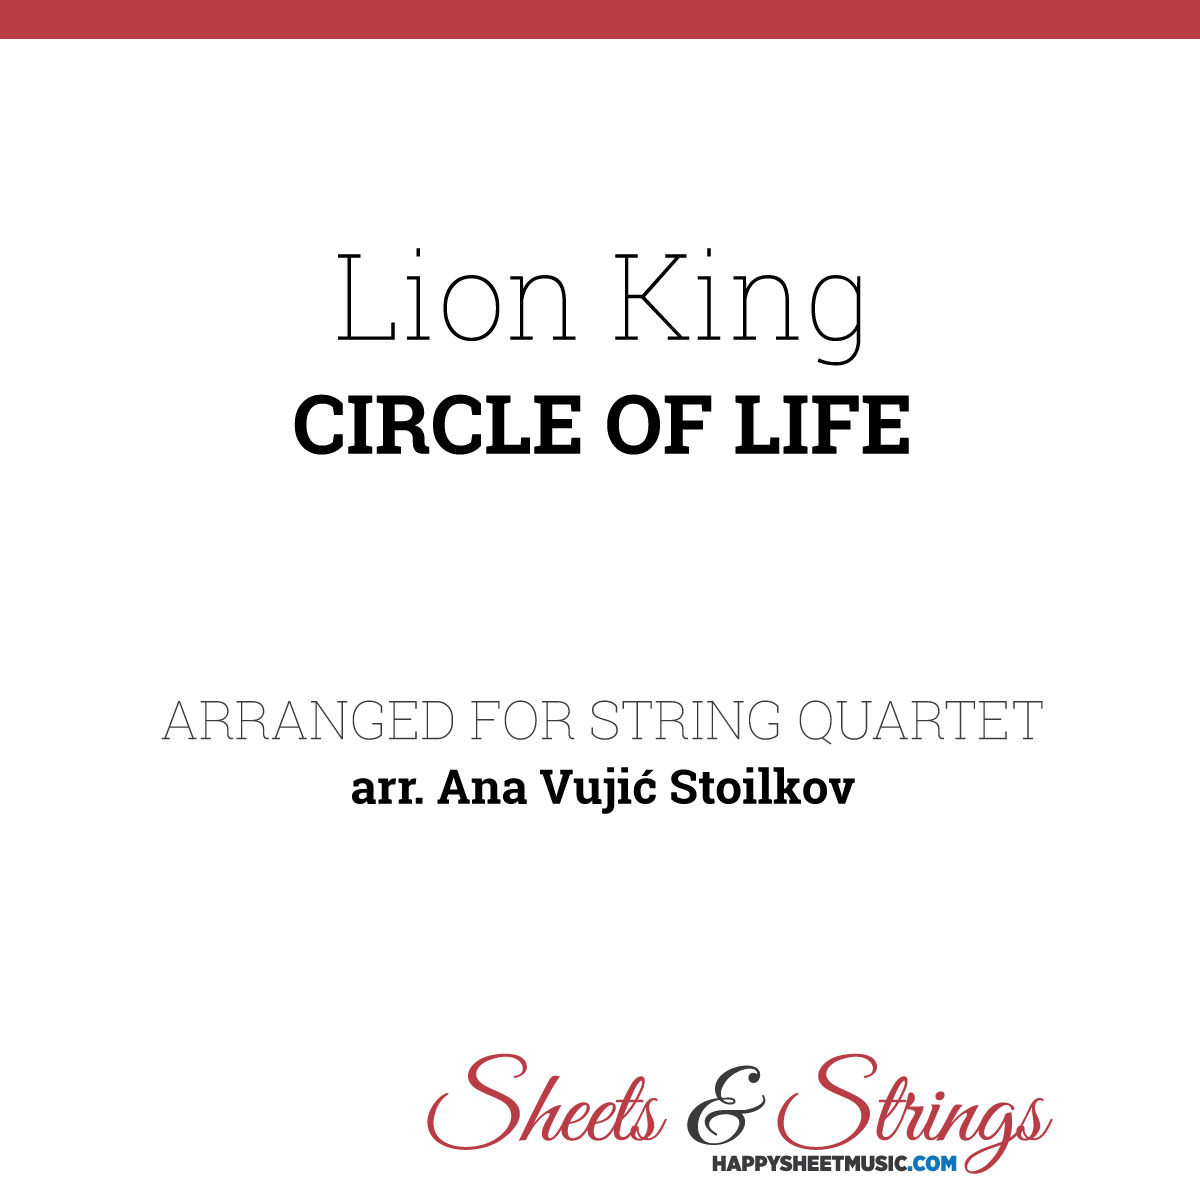 Lion King - Circle of life Sheet Music for String Quartet